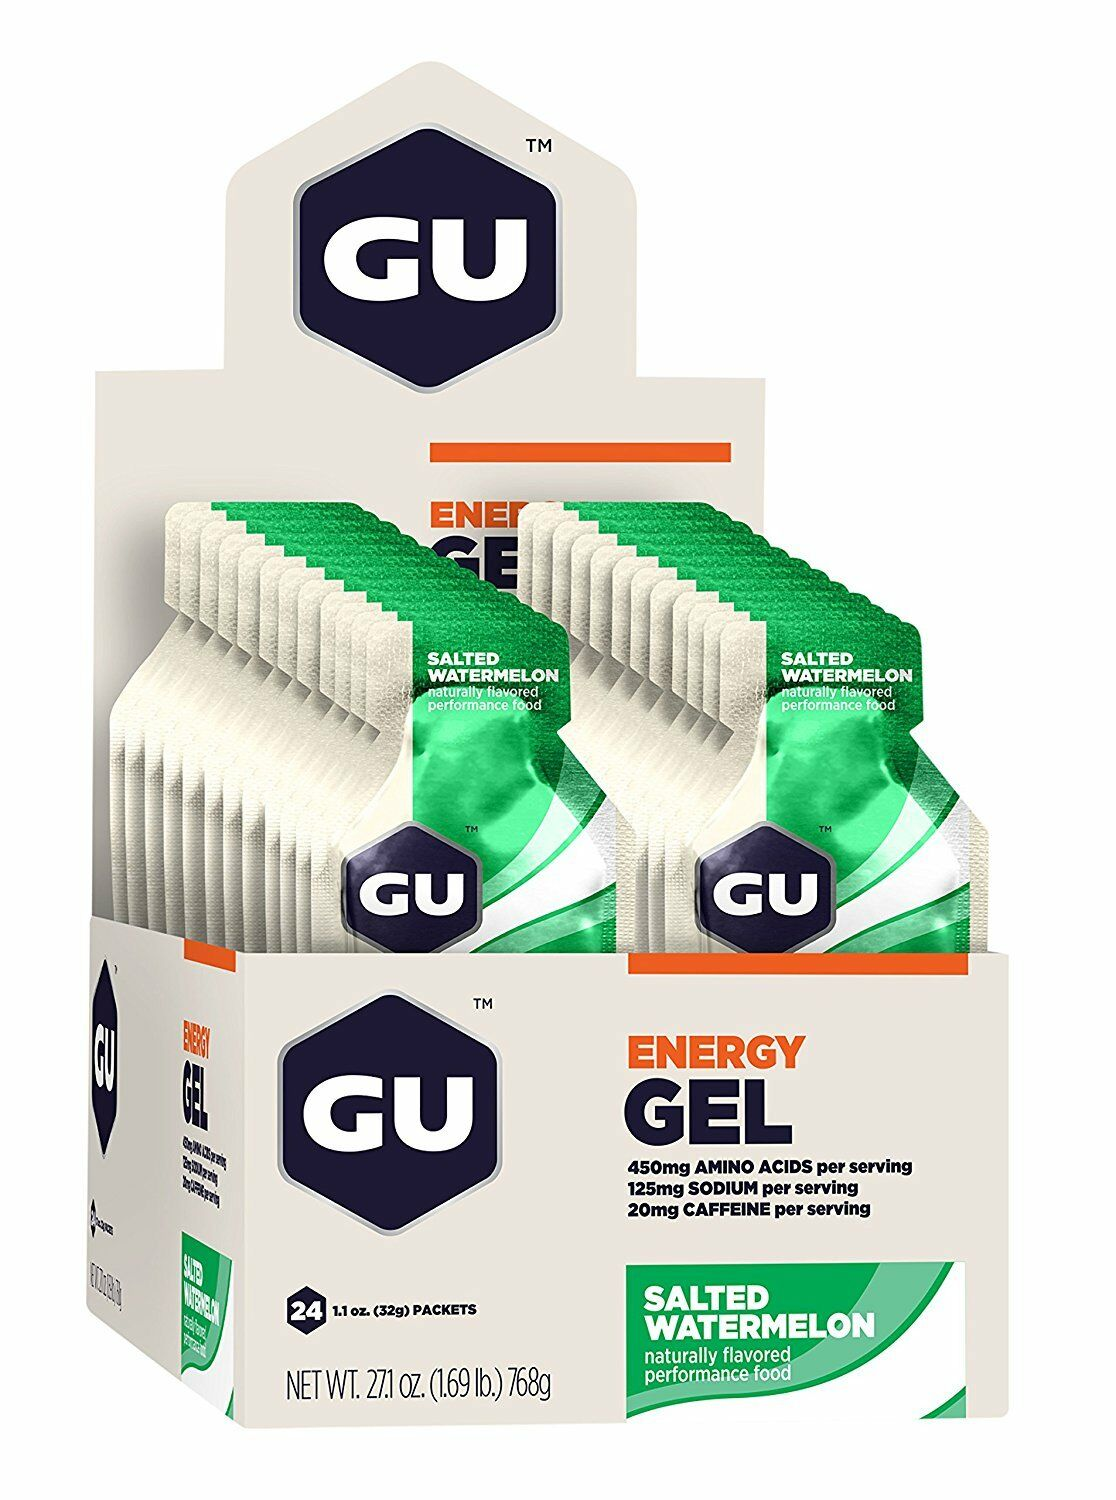 GU Energy Gel Salted Watermelon Box of 24